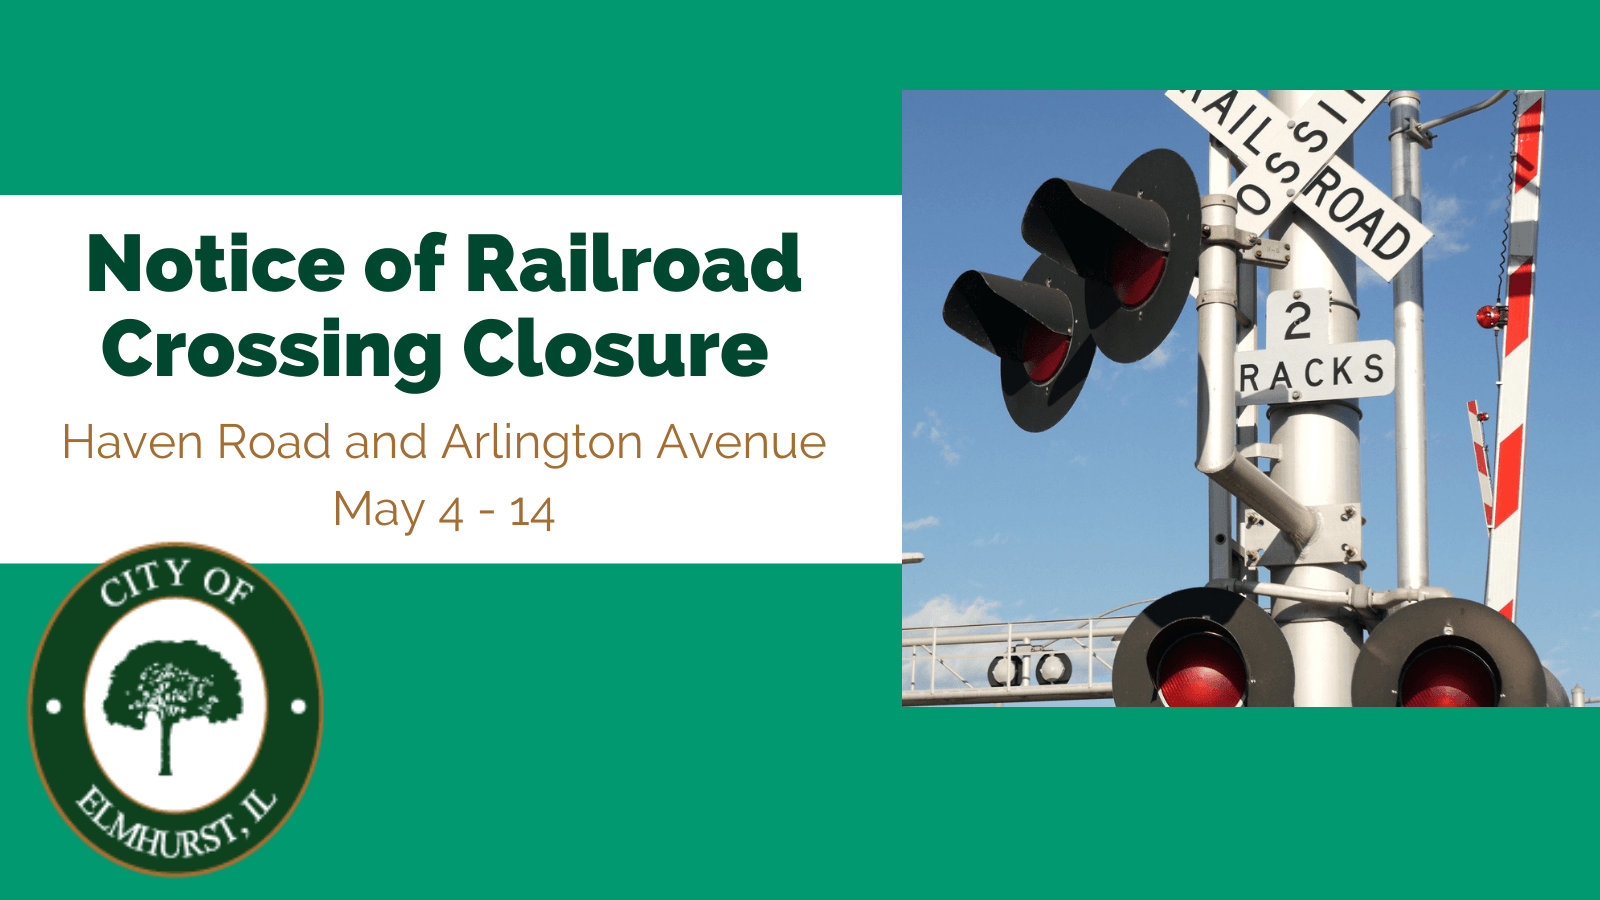 Notice of Railroad Crossing Closure